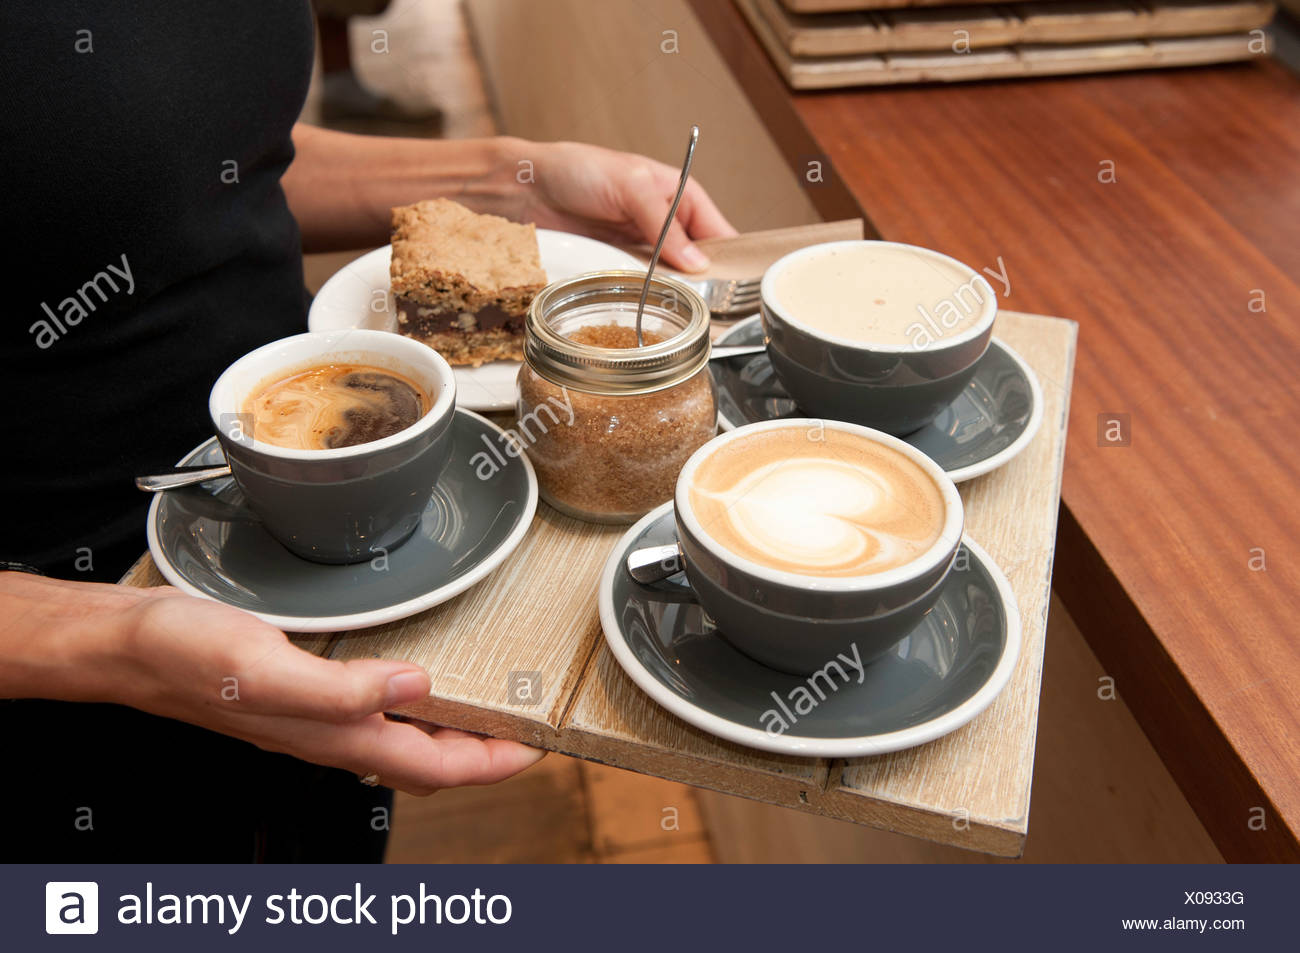 Barista serving coffee - Stock Image